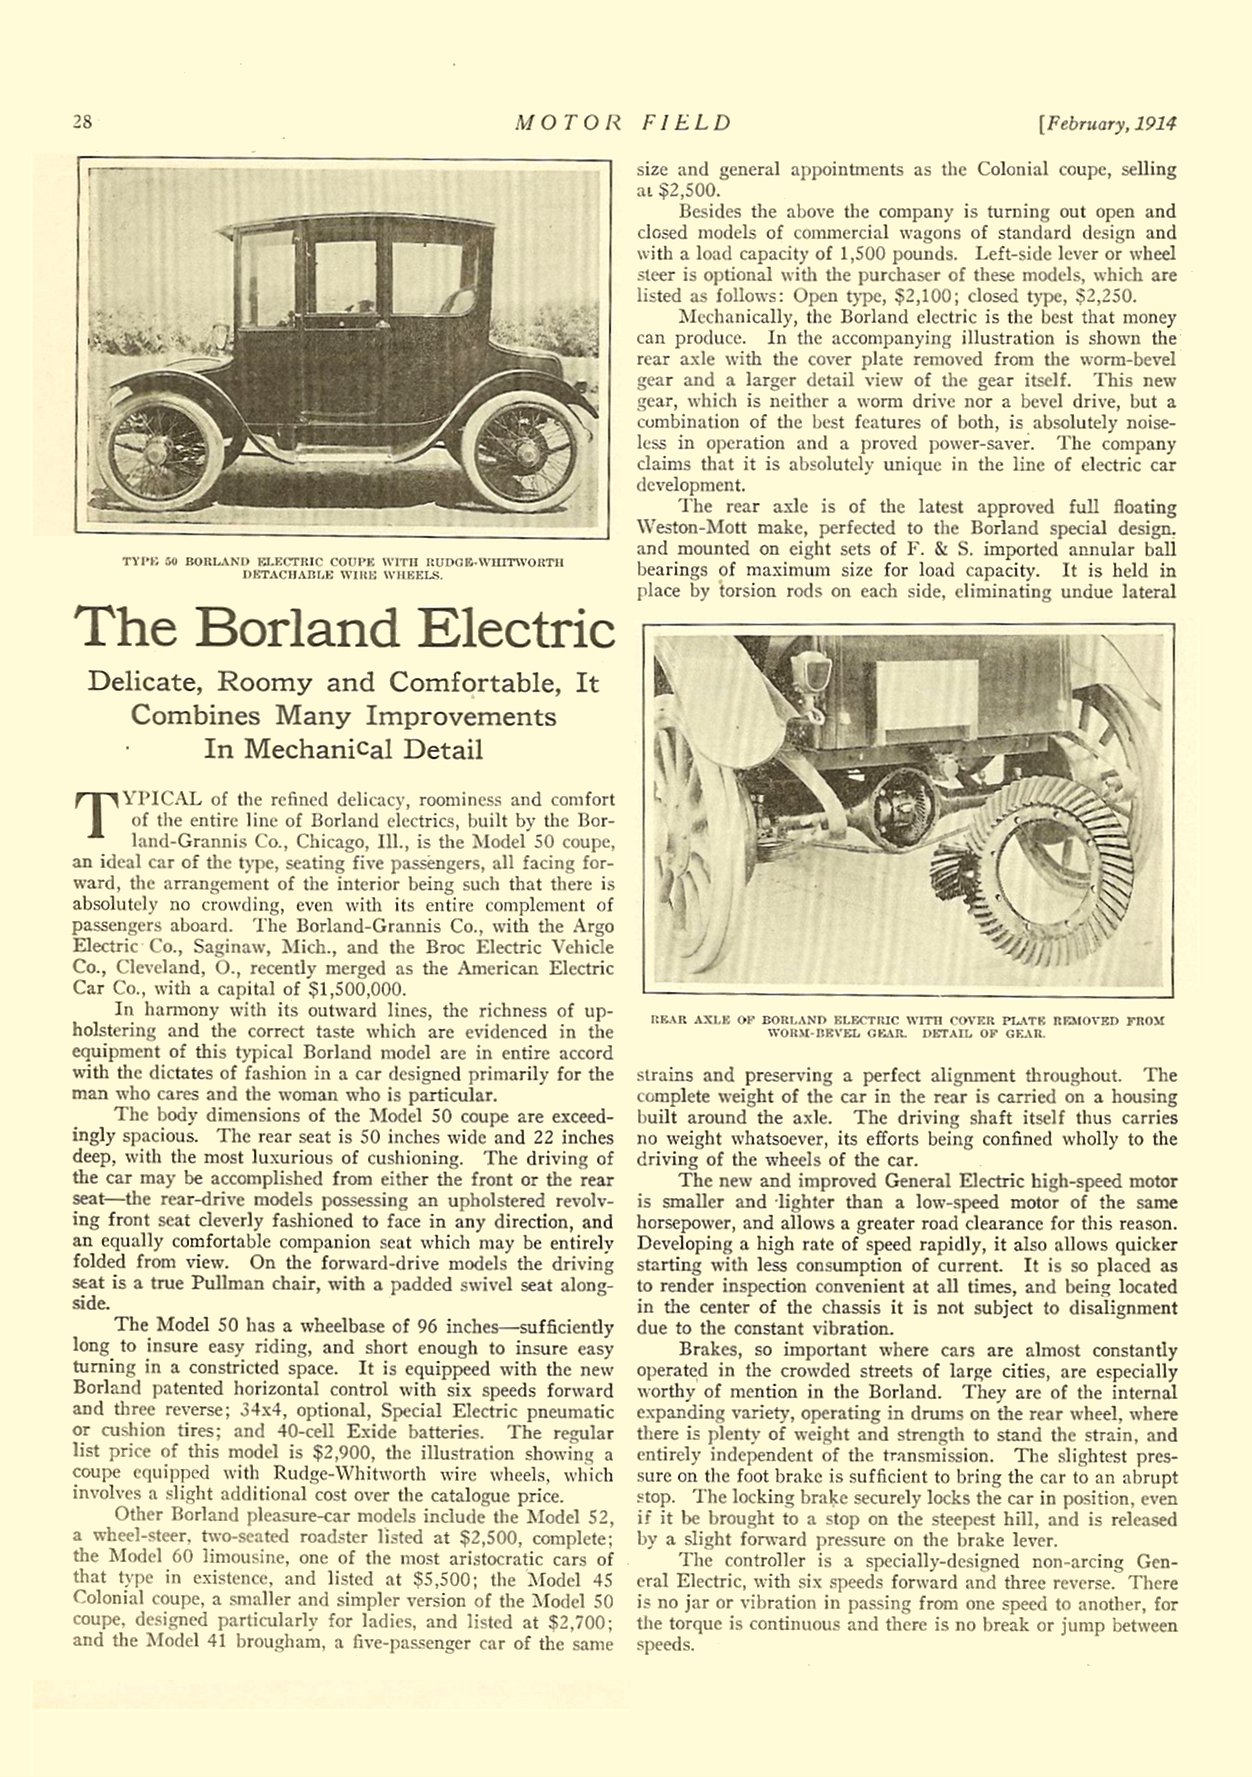 1914 2 BORLAND The Borland Electric (article) MOTOR FIELD February 1914 Vol. 28 No. 5 9″x12″ page 28